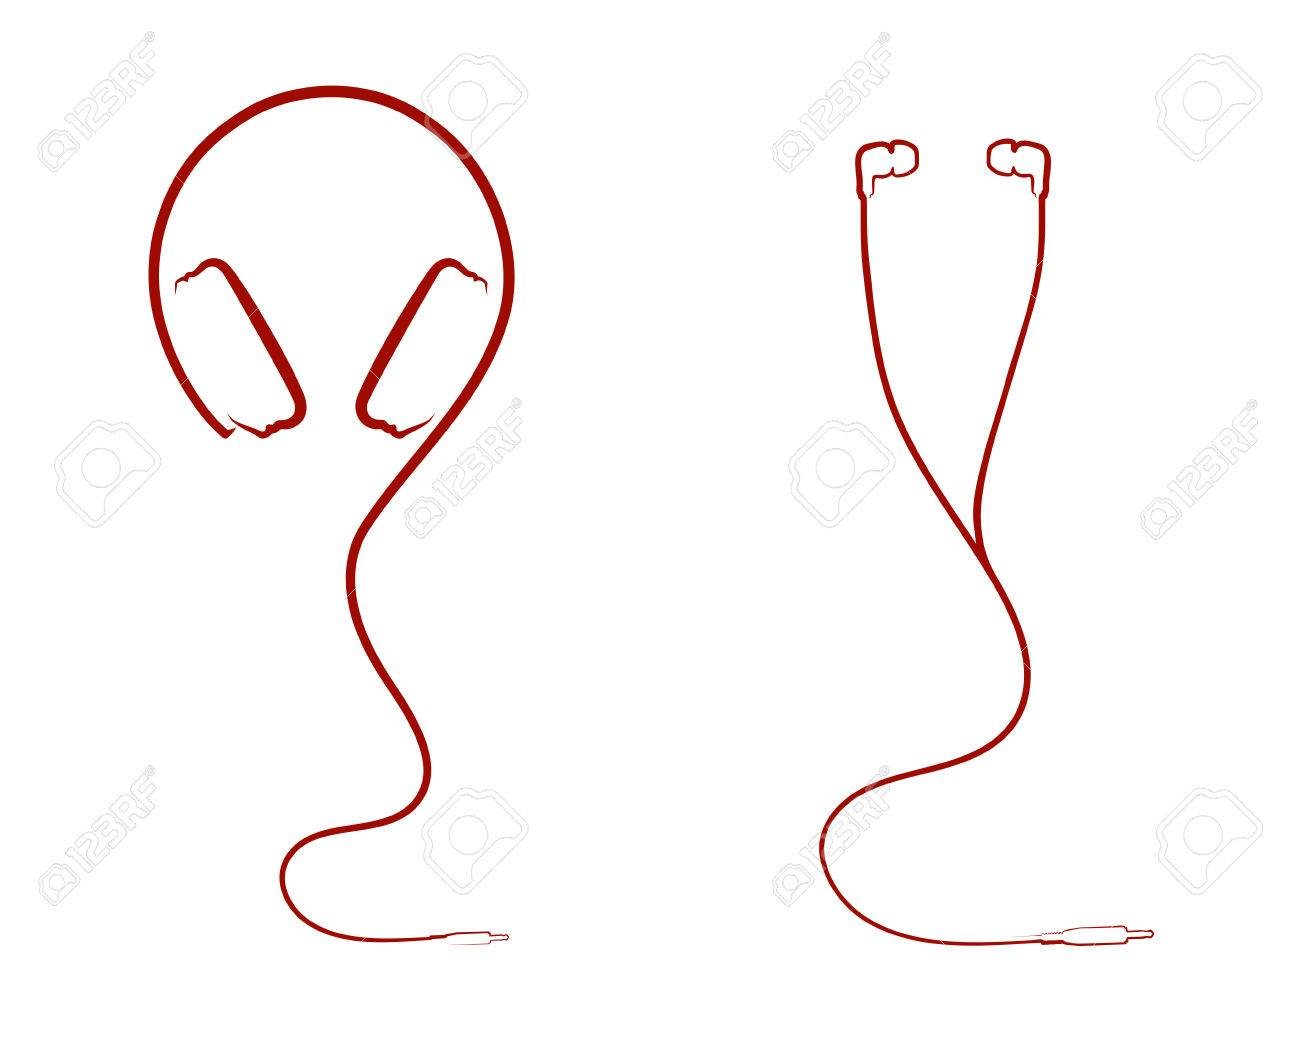 abstract silhouette headphones royalty free cliparts, vectors, and